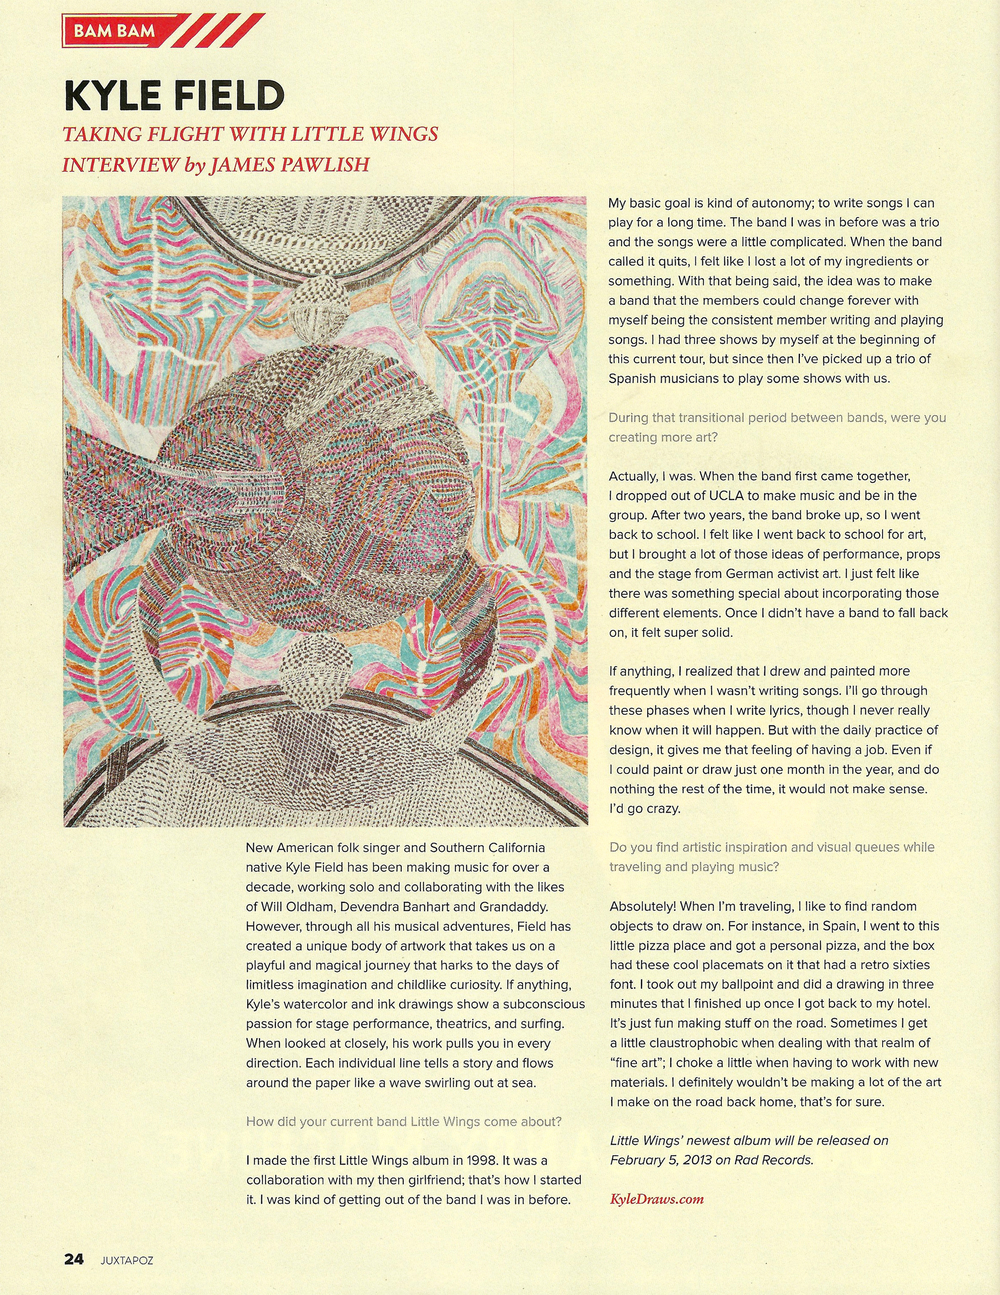 Juxtapoz February 2013 Interview.jpg